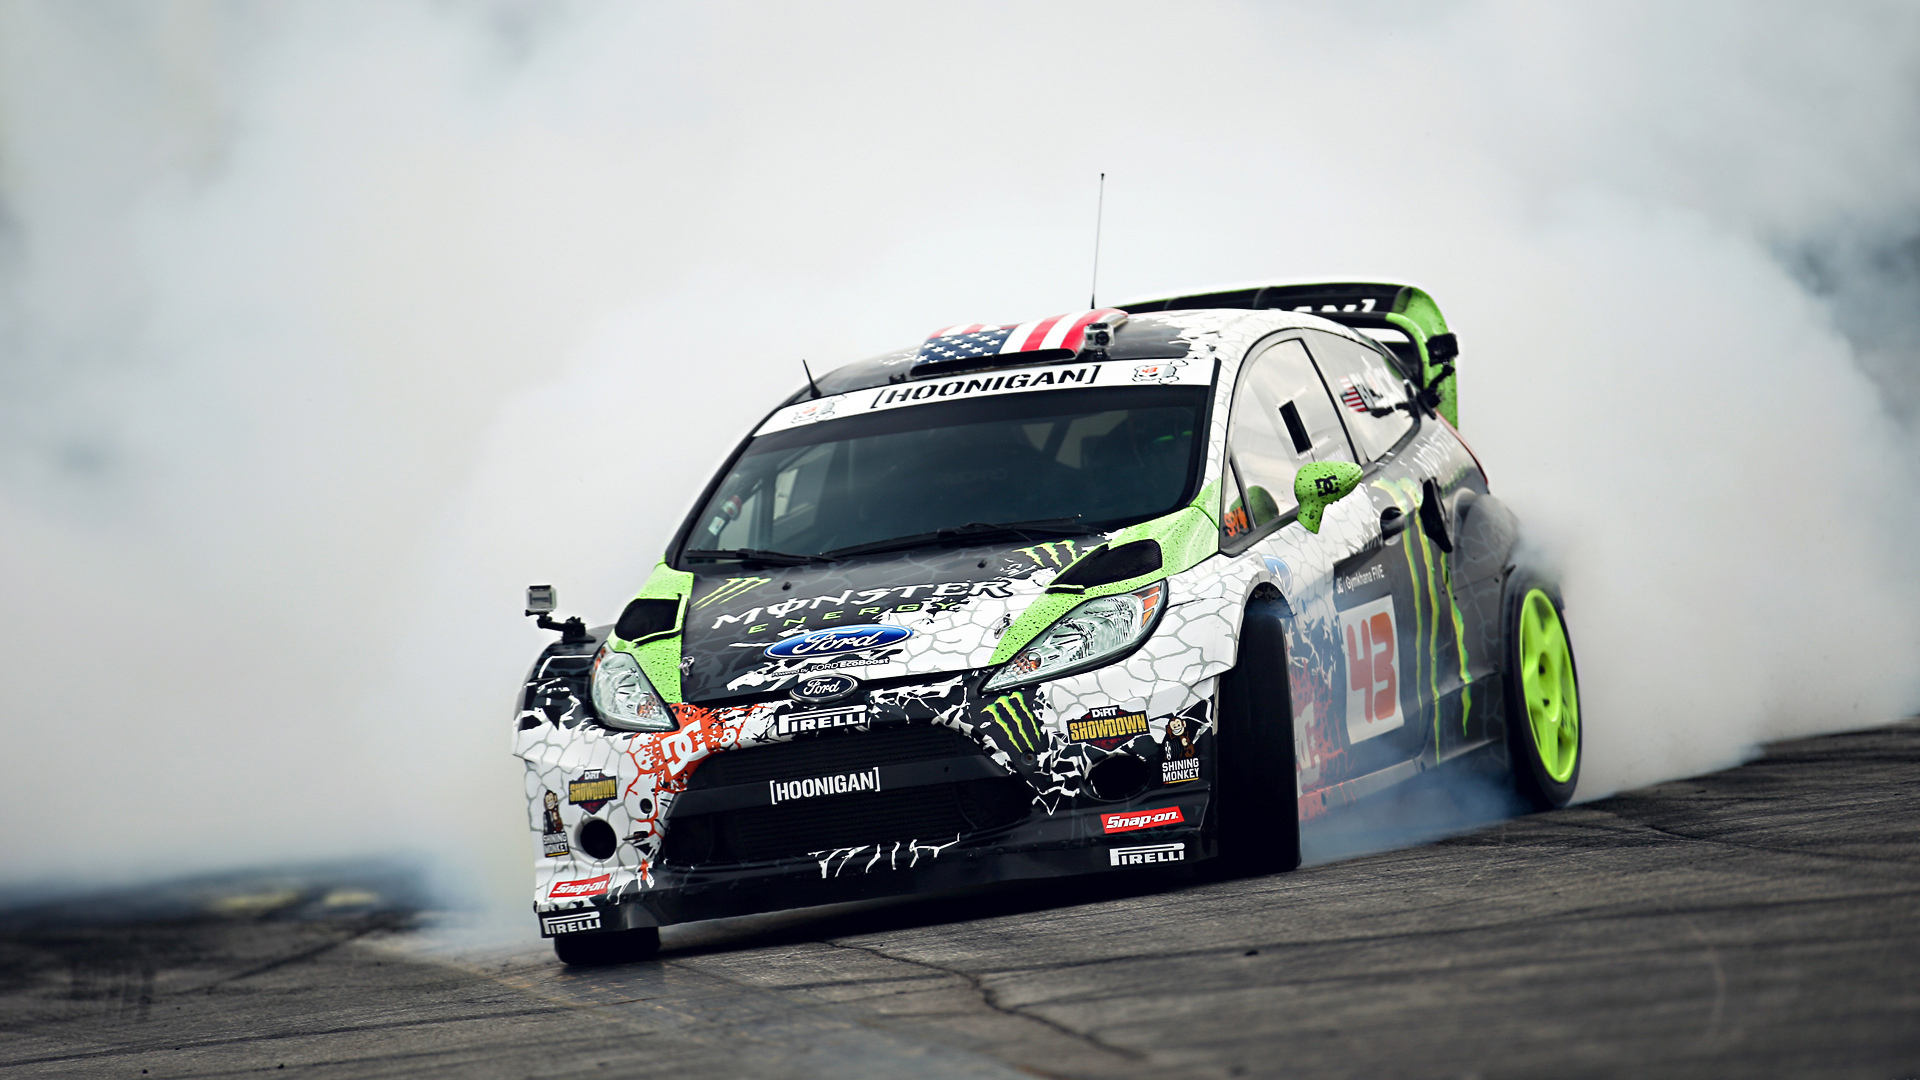 Drift Full HD Wallpaper and Background Image | 1920x1080 ...